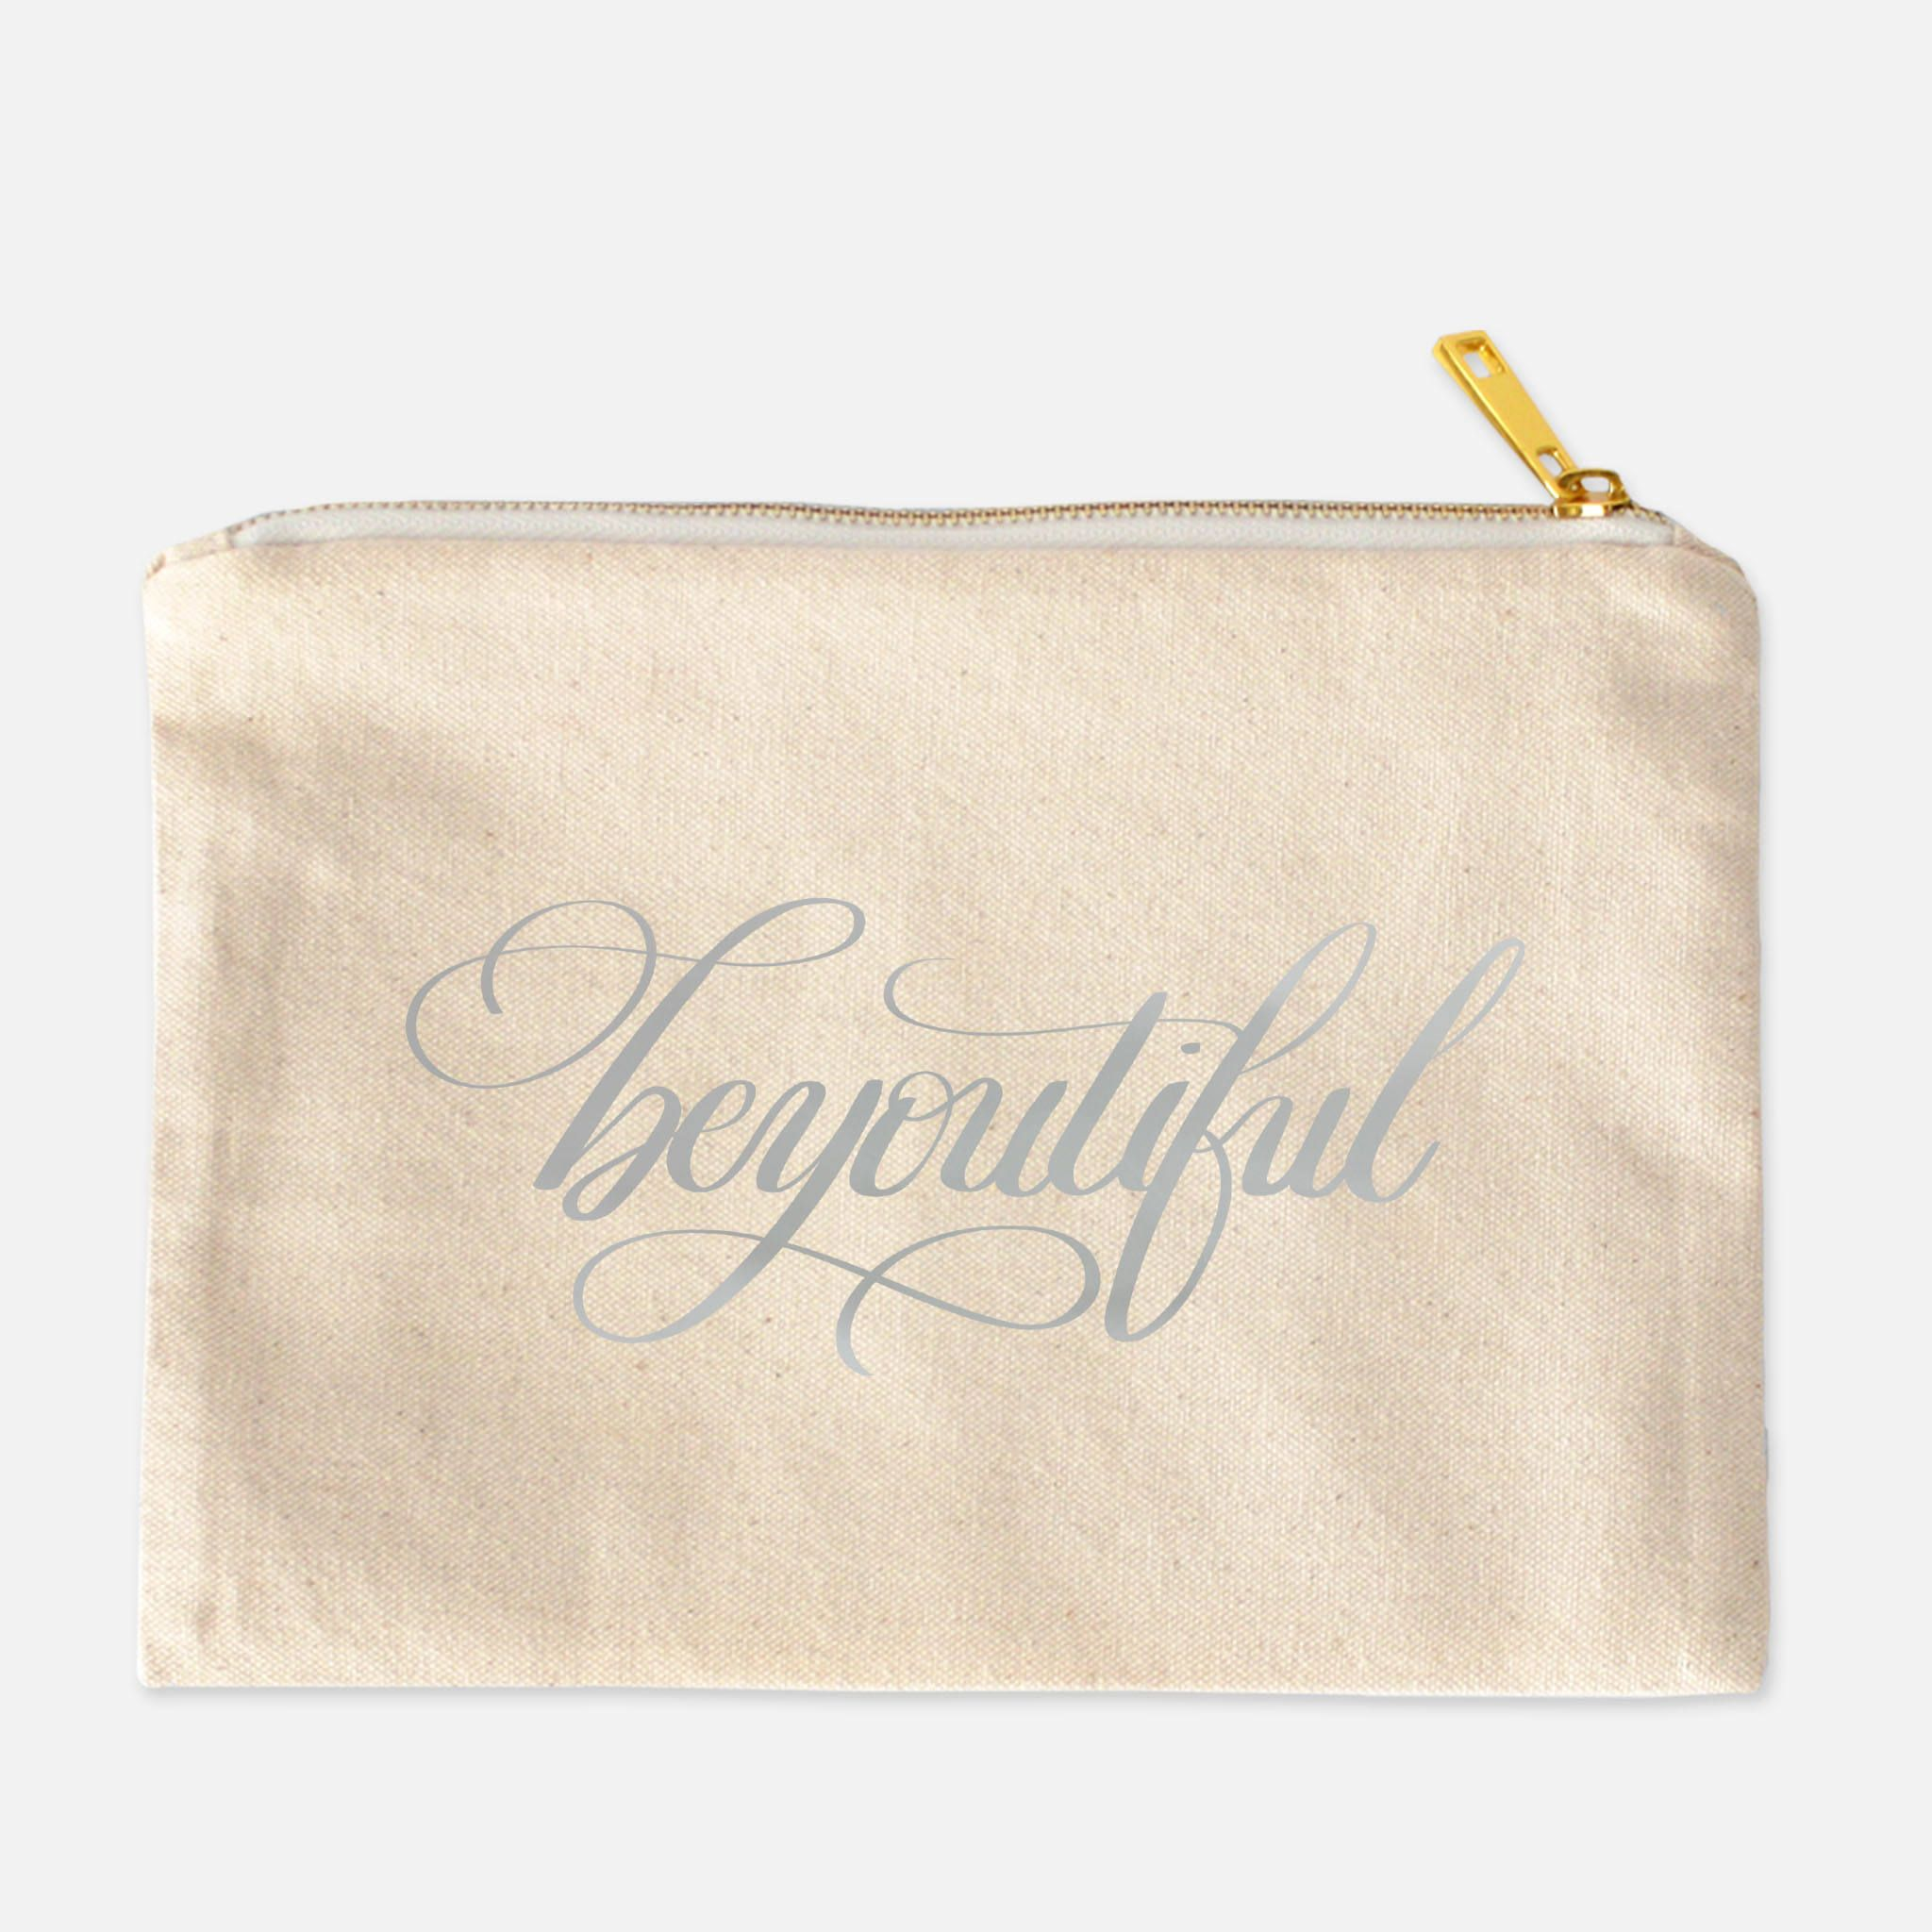 Be You Tiful Canvas Makeup Bag, Bag with Sayings, Gold